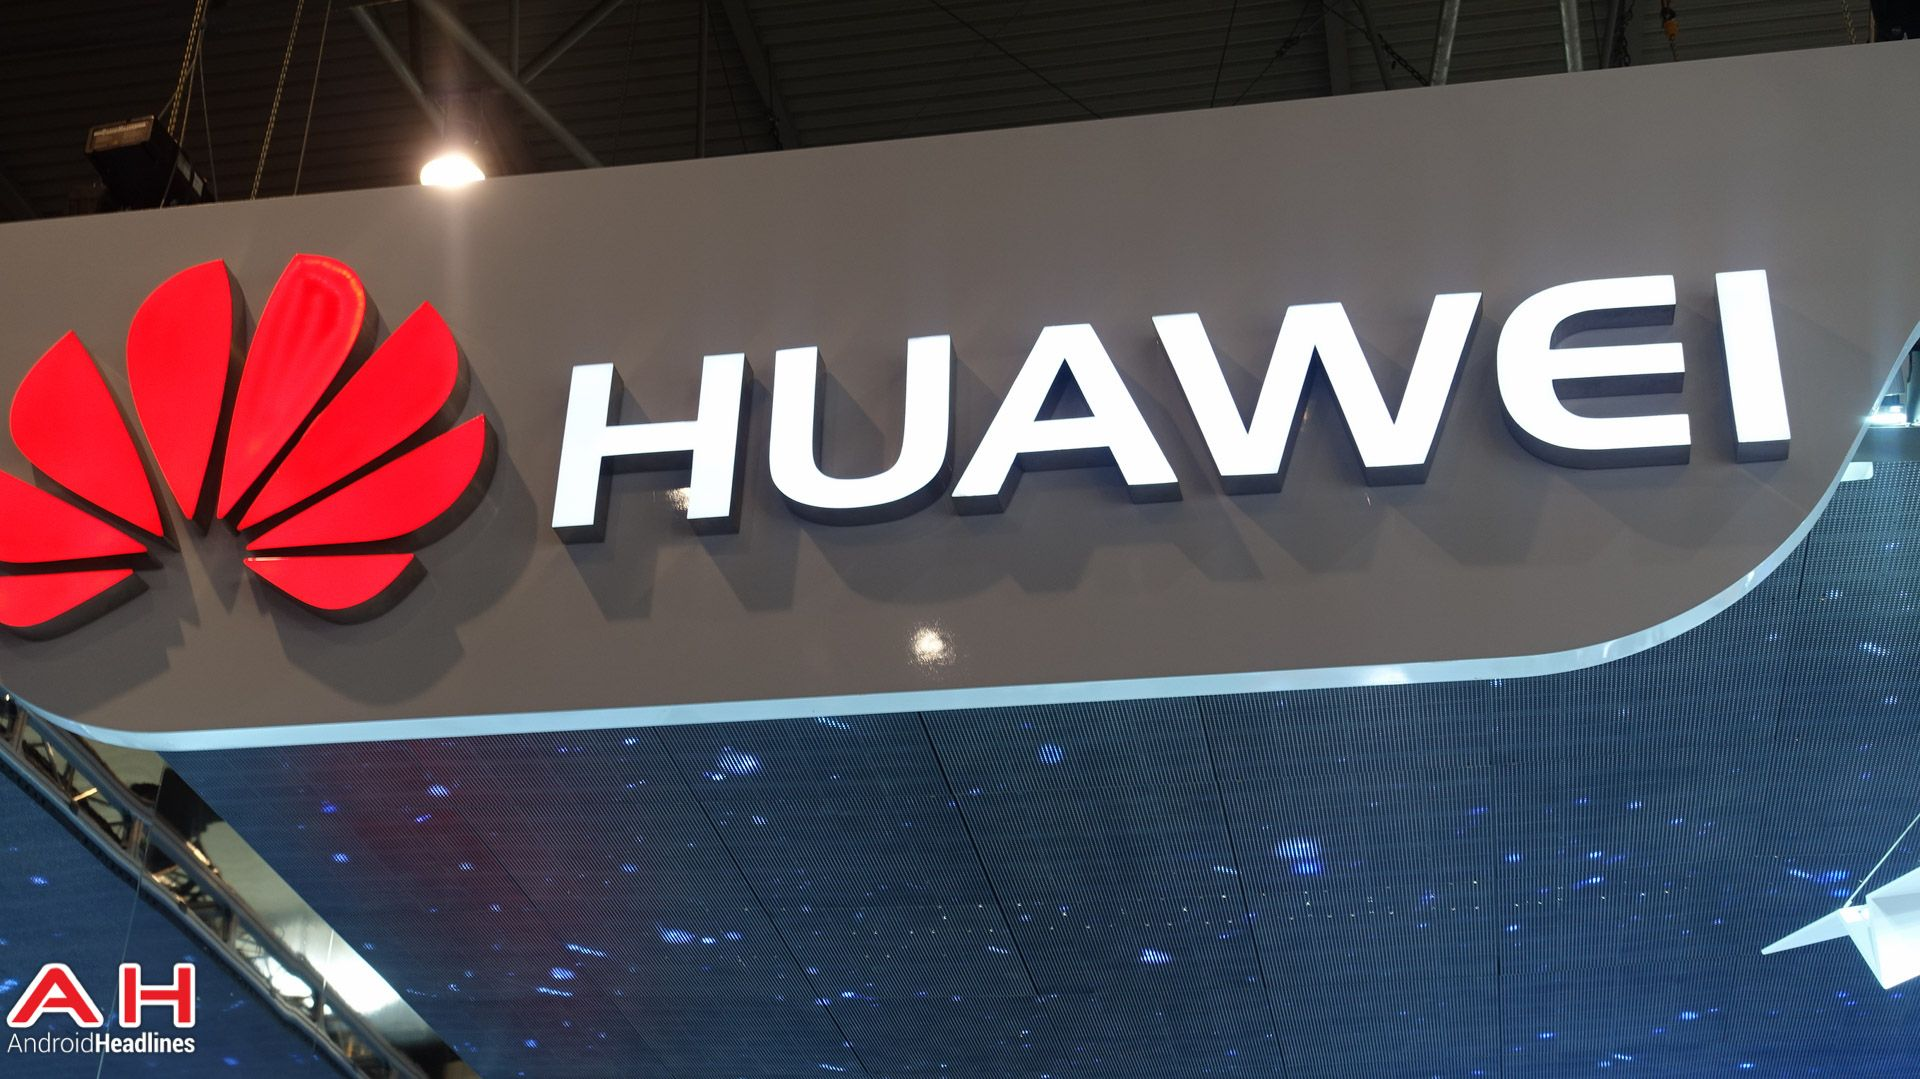 Huawei fers $1 Billion to Devs in Search For Innovation